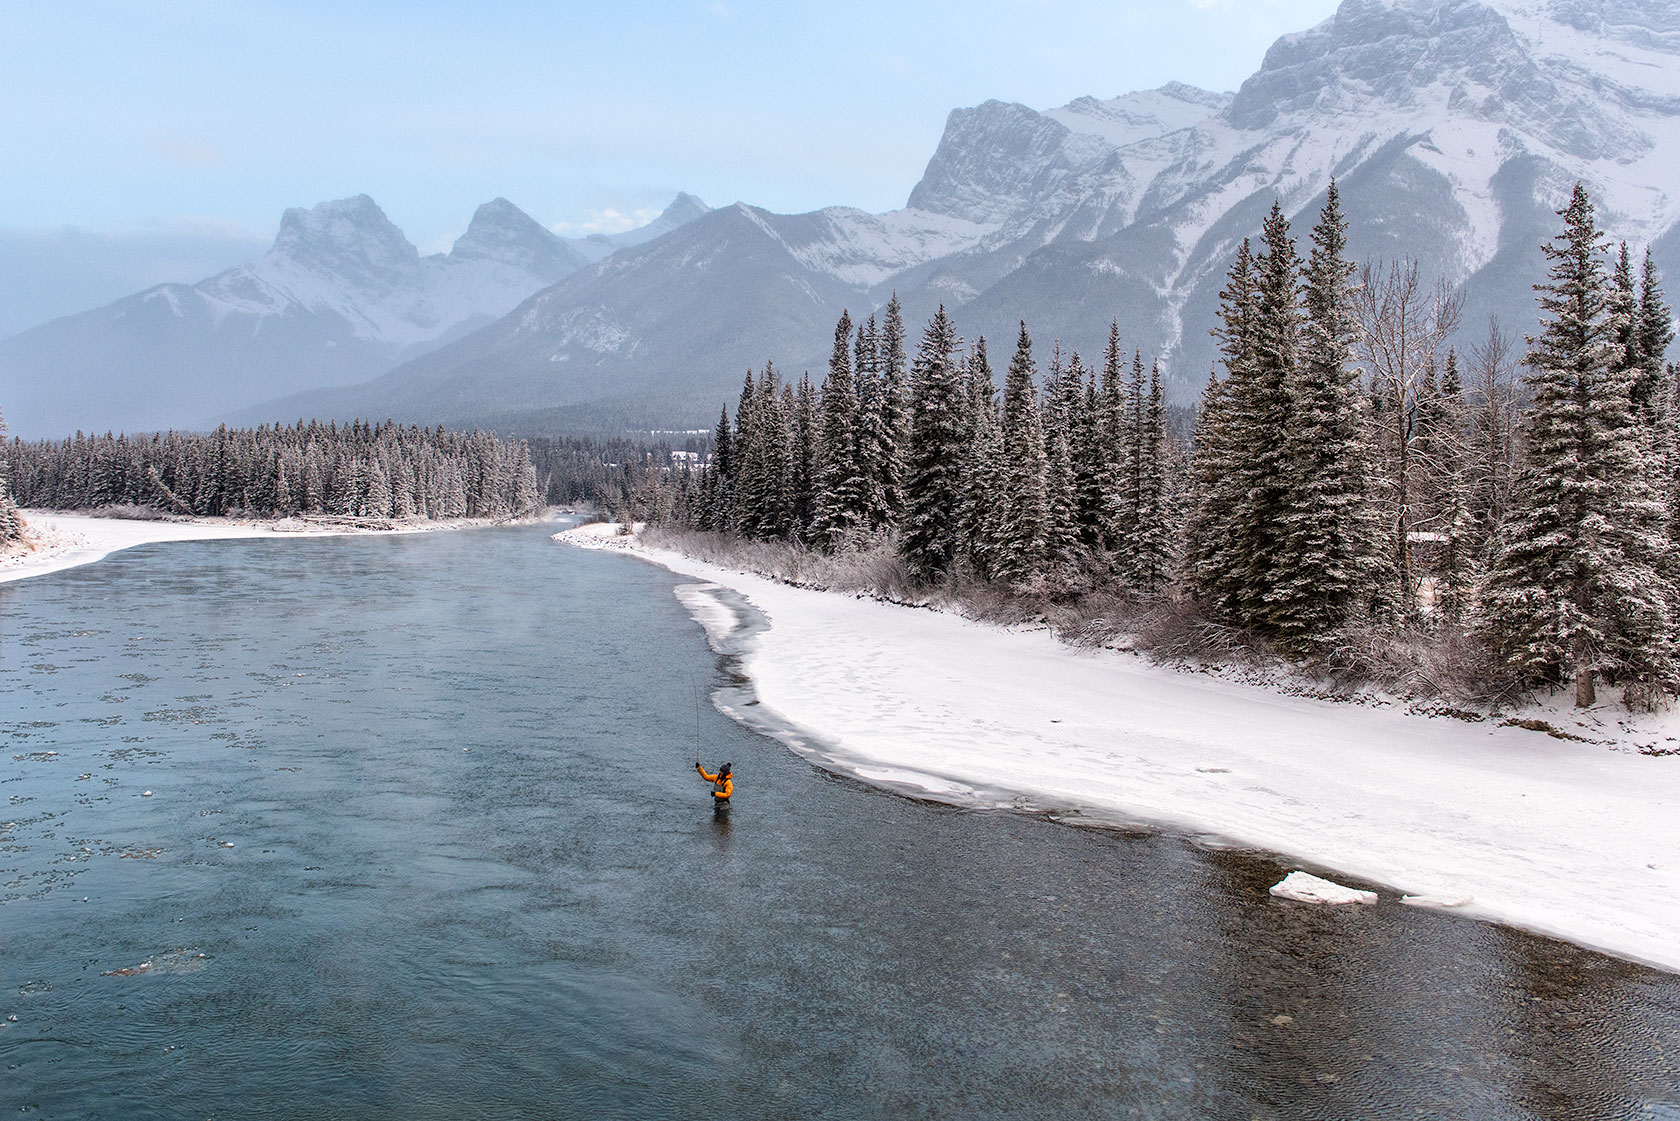 austin-trigg-patagonia-banff-alberta-winter-canada-canmore-mountains-river-fly-fishing-winter-snow-outside-adventure-bow-river.jpg